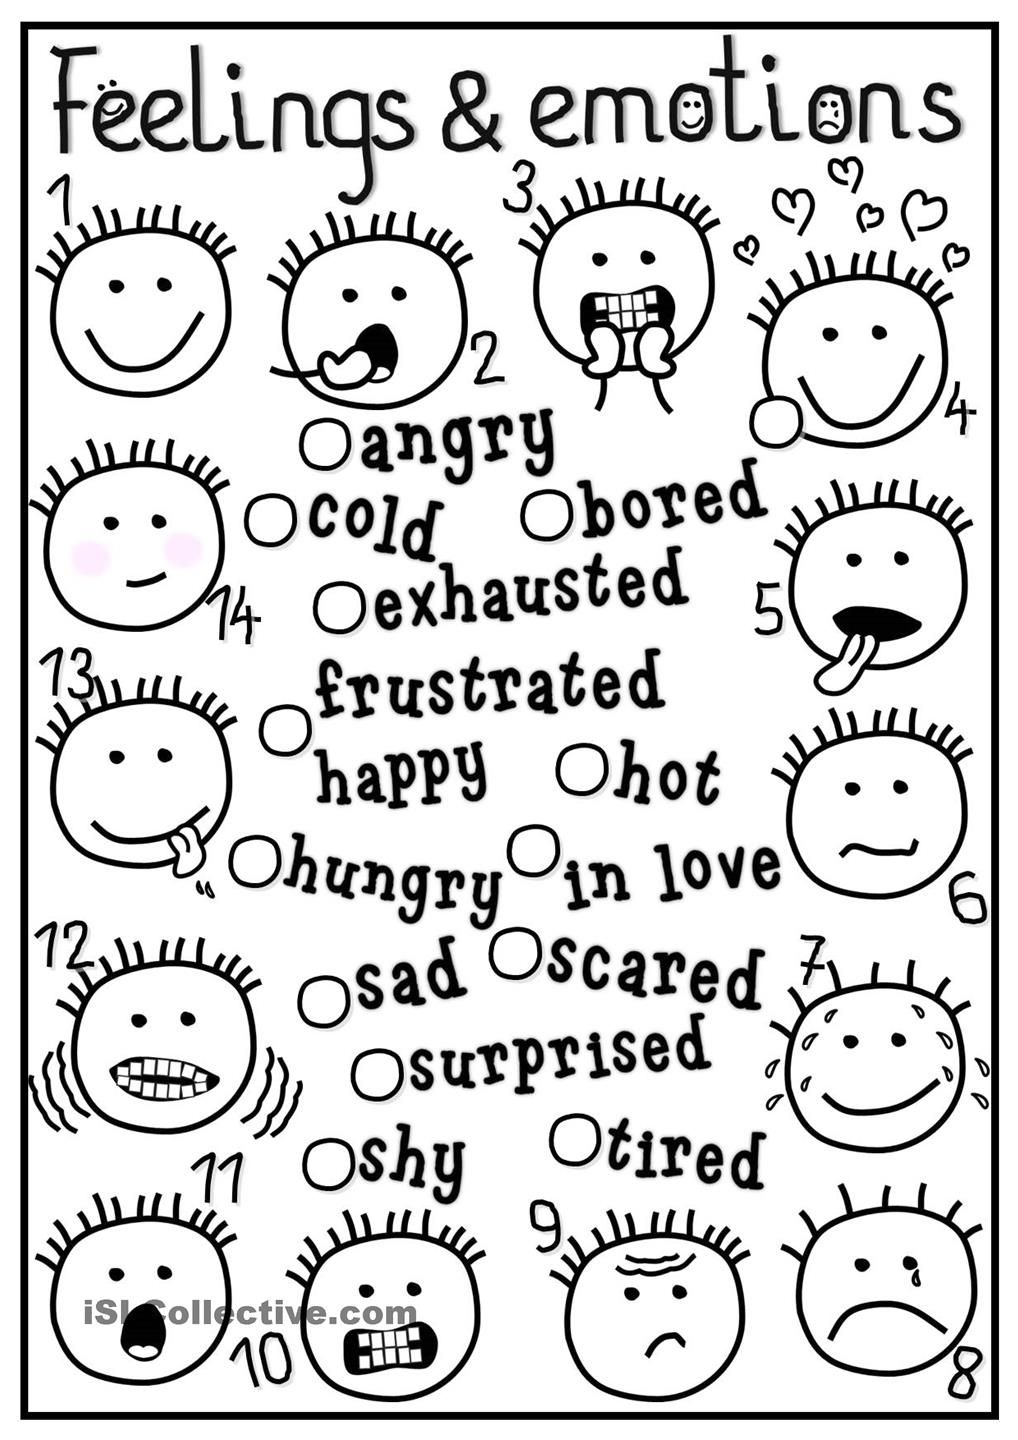 Printable coloring pages esl - Feelings And Emotions Matching